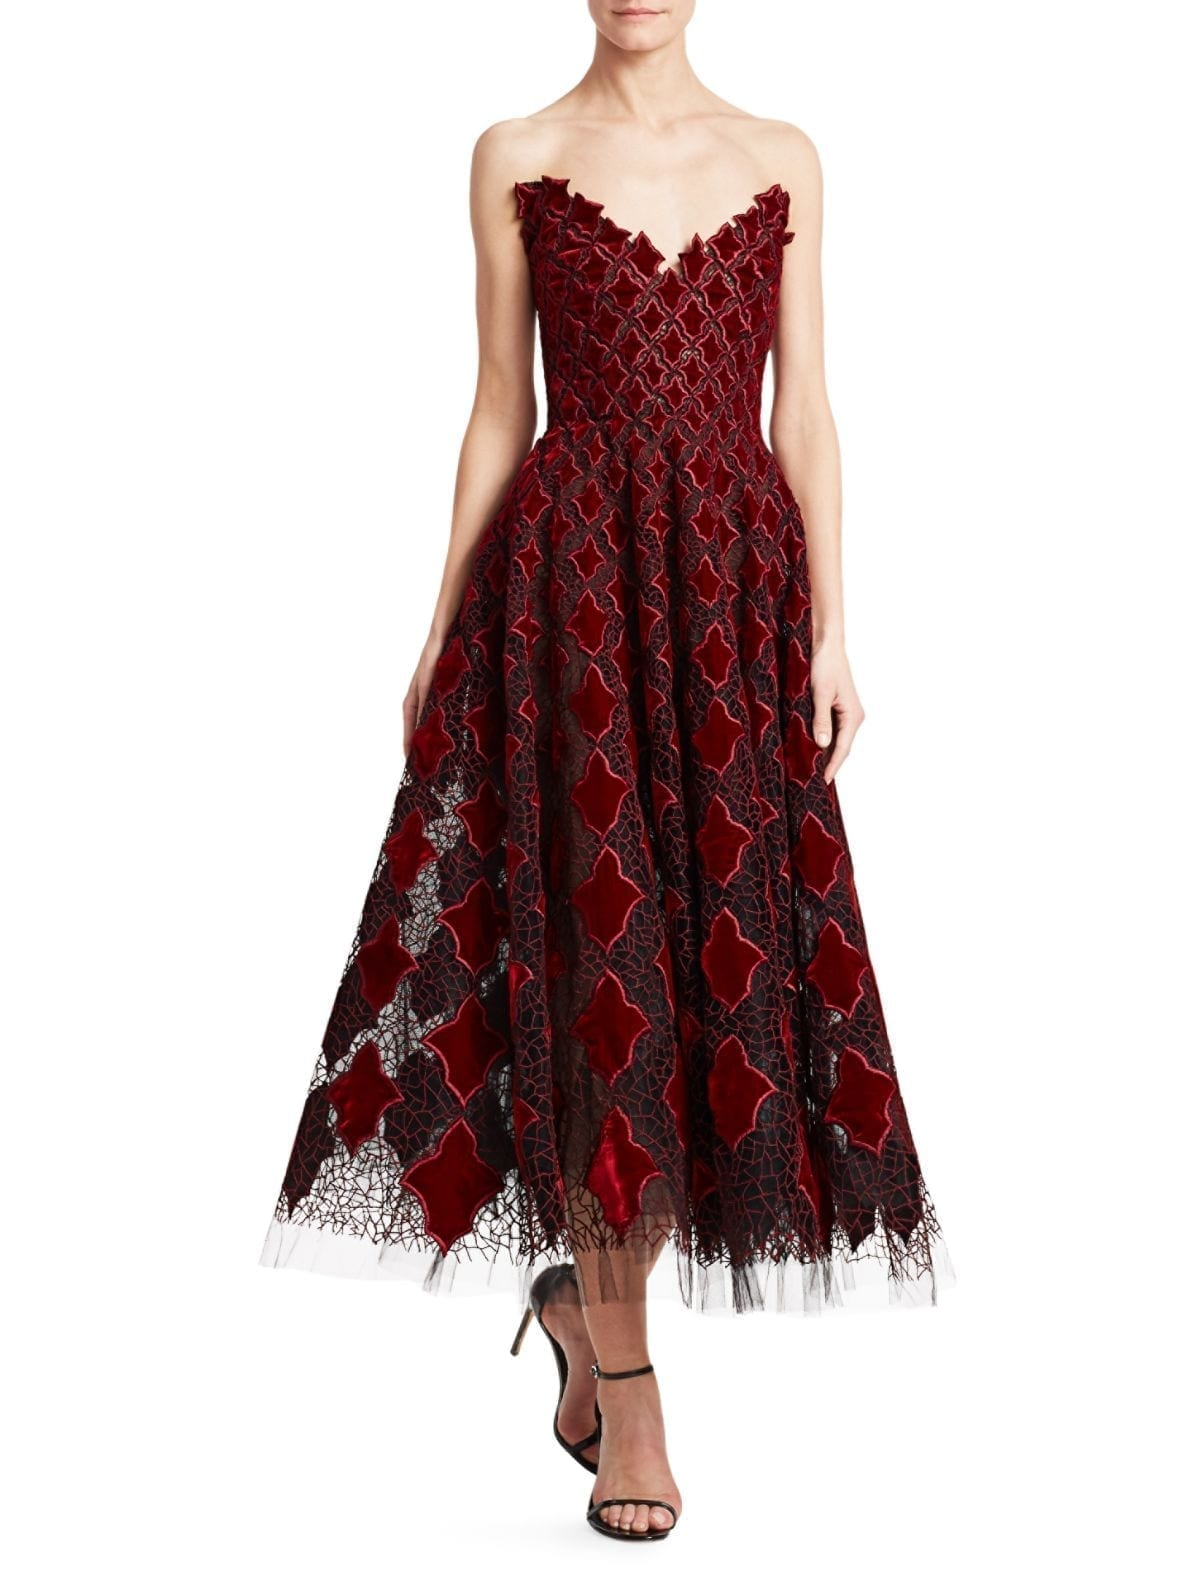 OSCAR DE LA RENTA Strapless Velvet & Tulle Tea-Length Dress